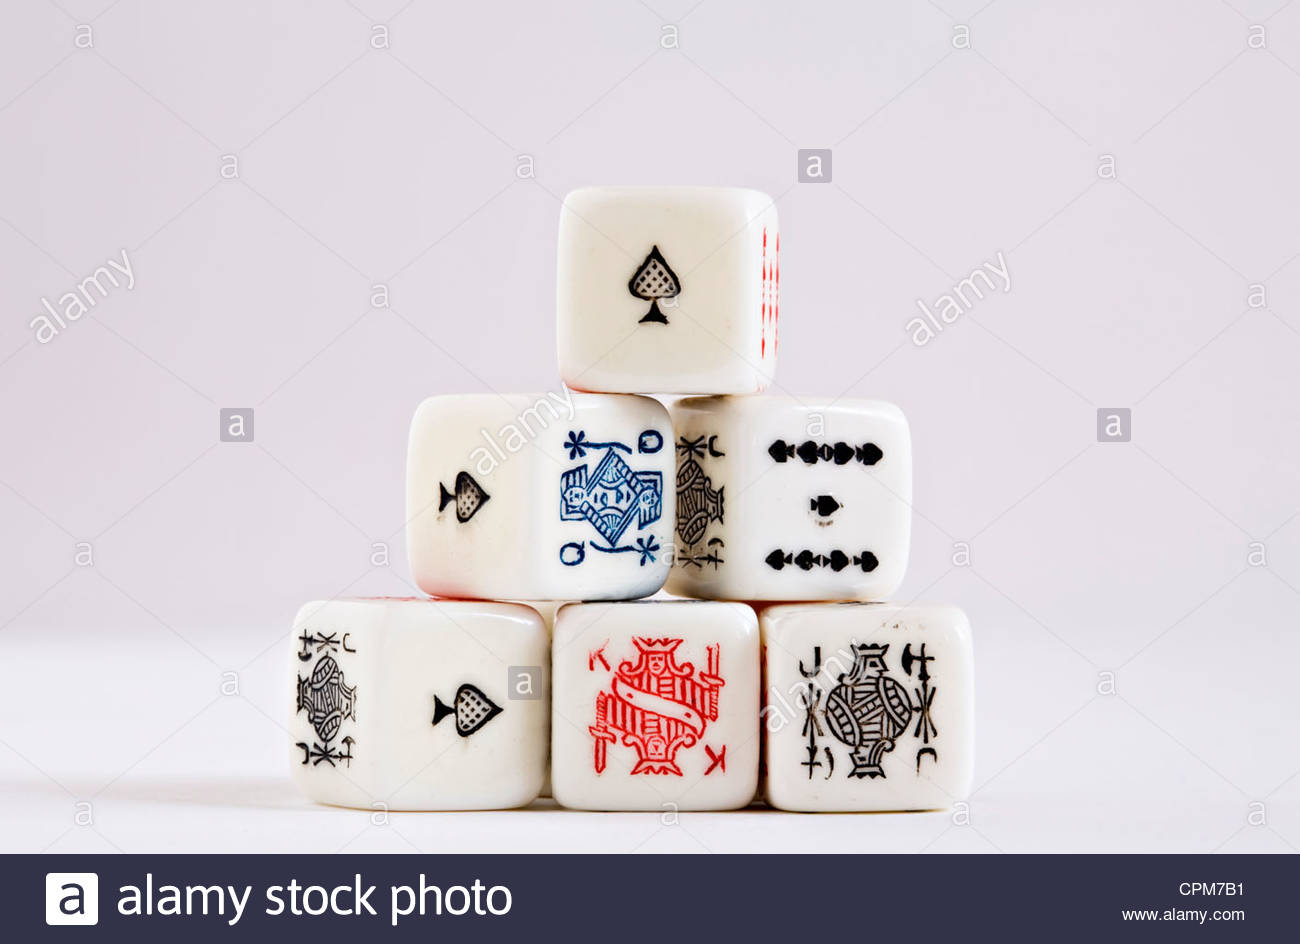 stack dice game instructions